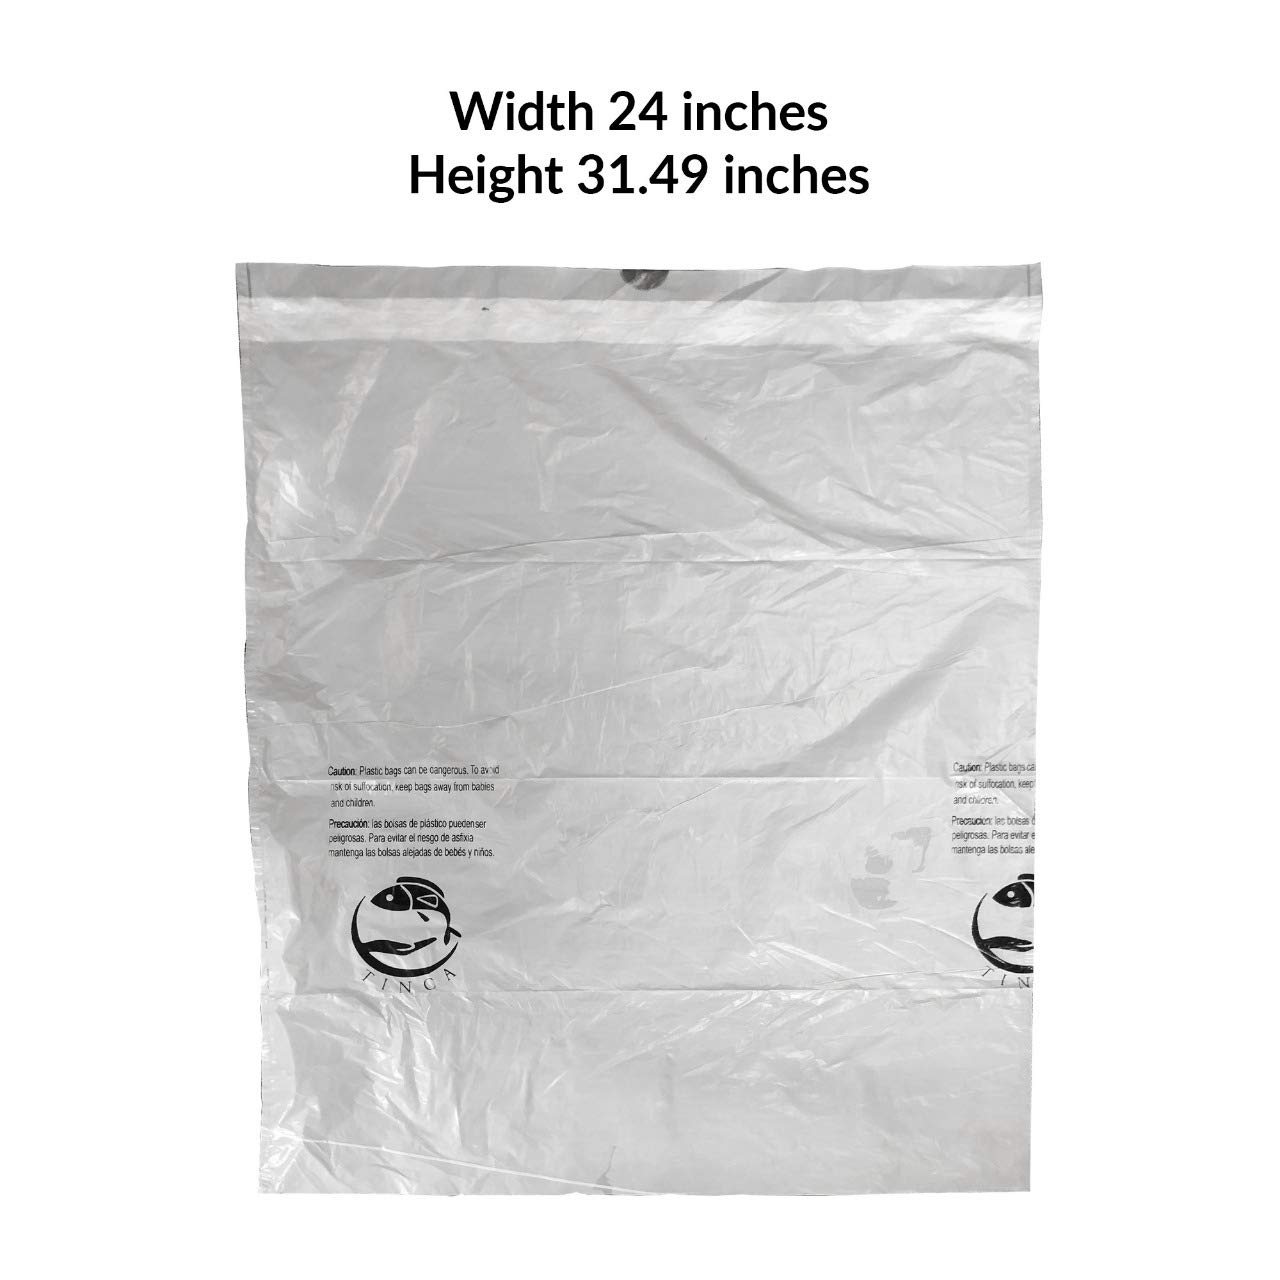 Amazon.com: Tinca 13-16 Gallon Trash Bag (P Compatible ...